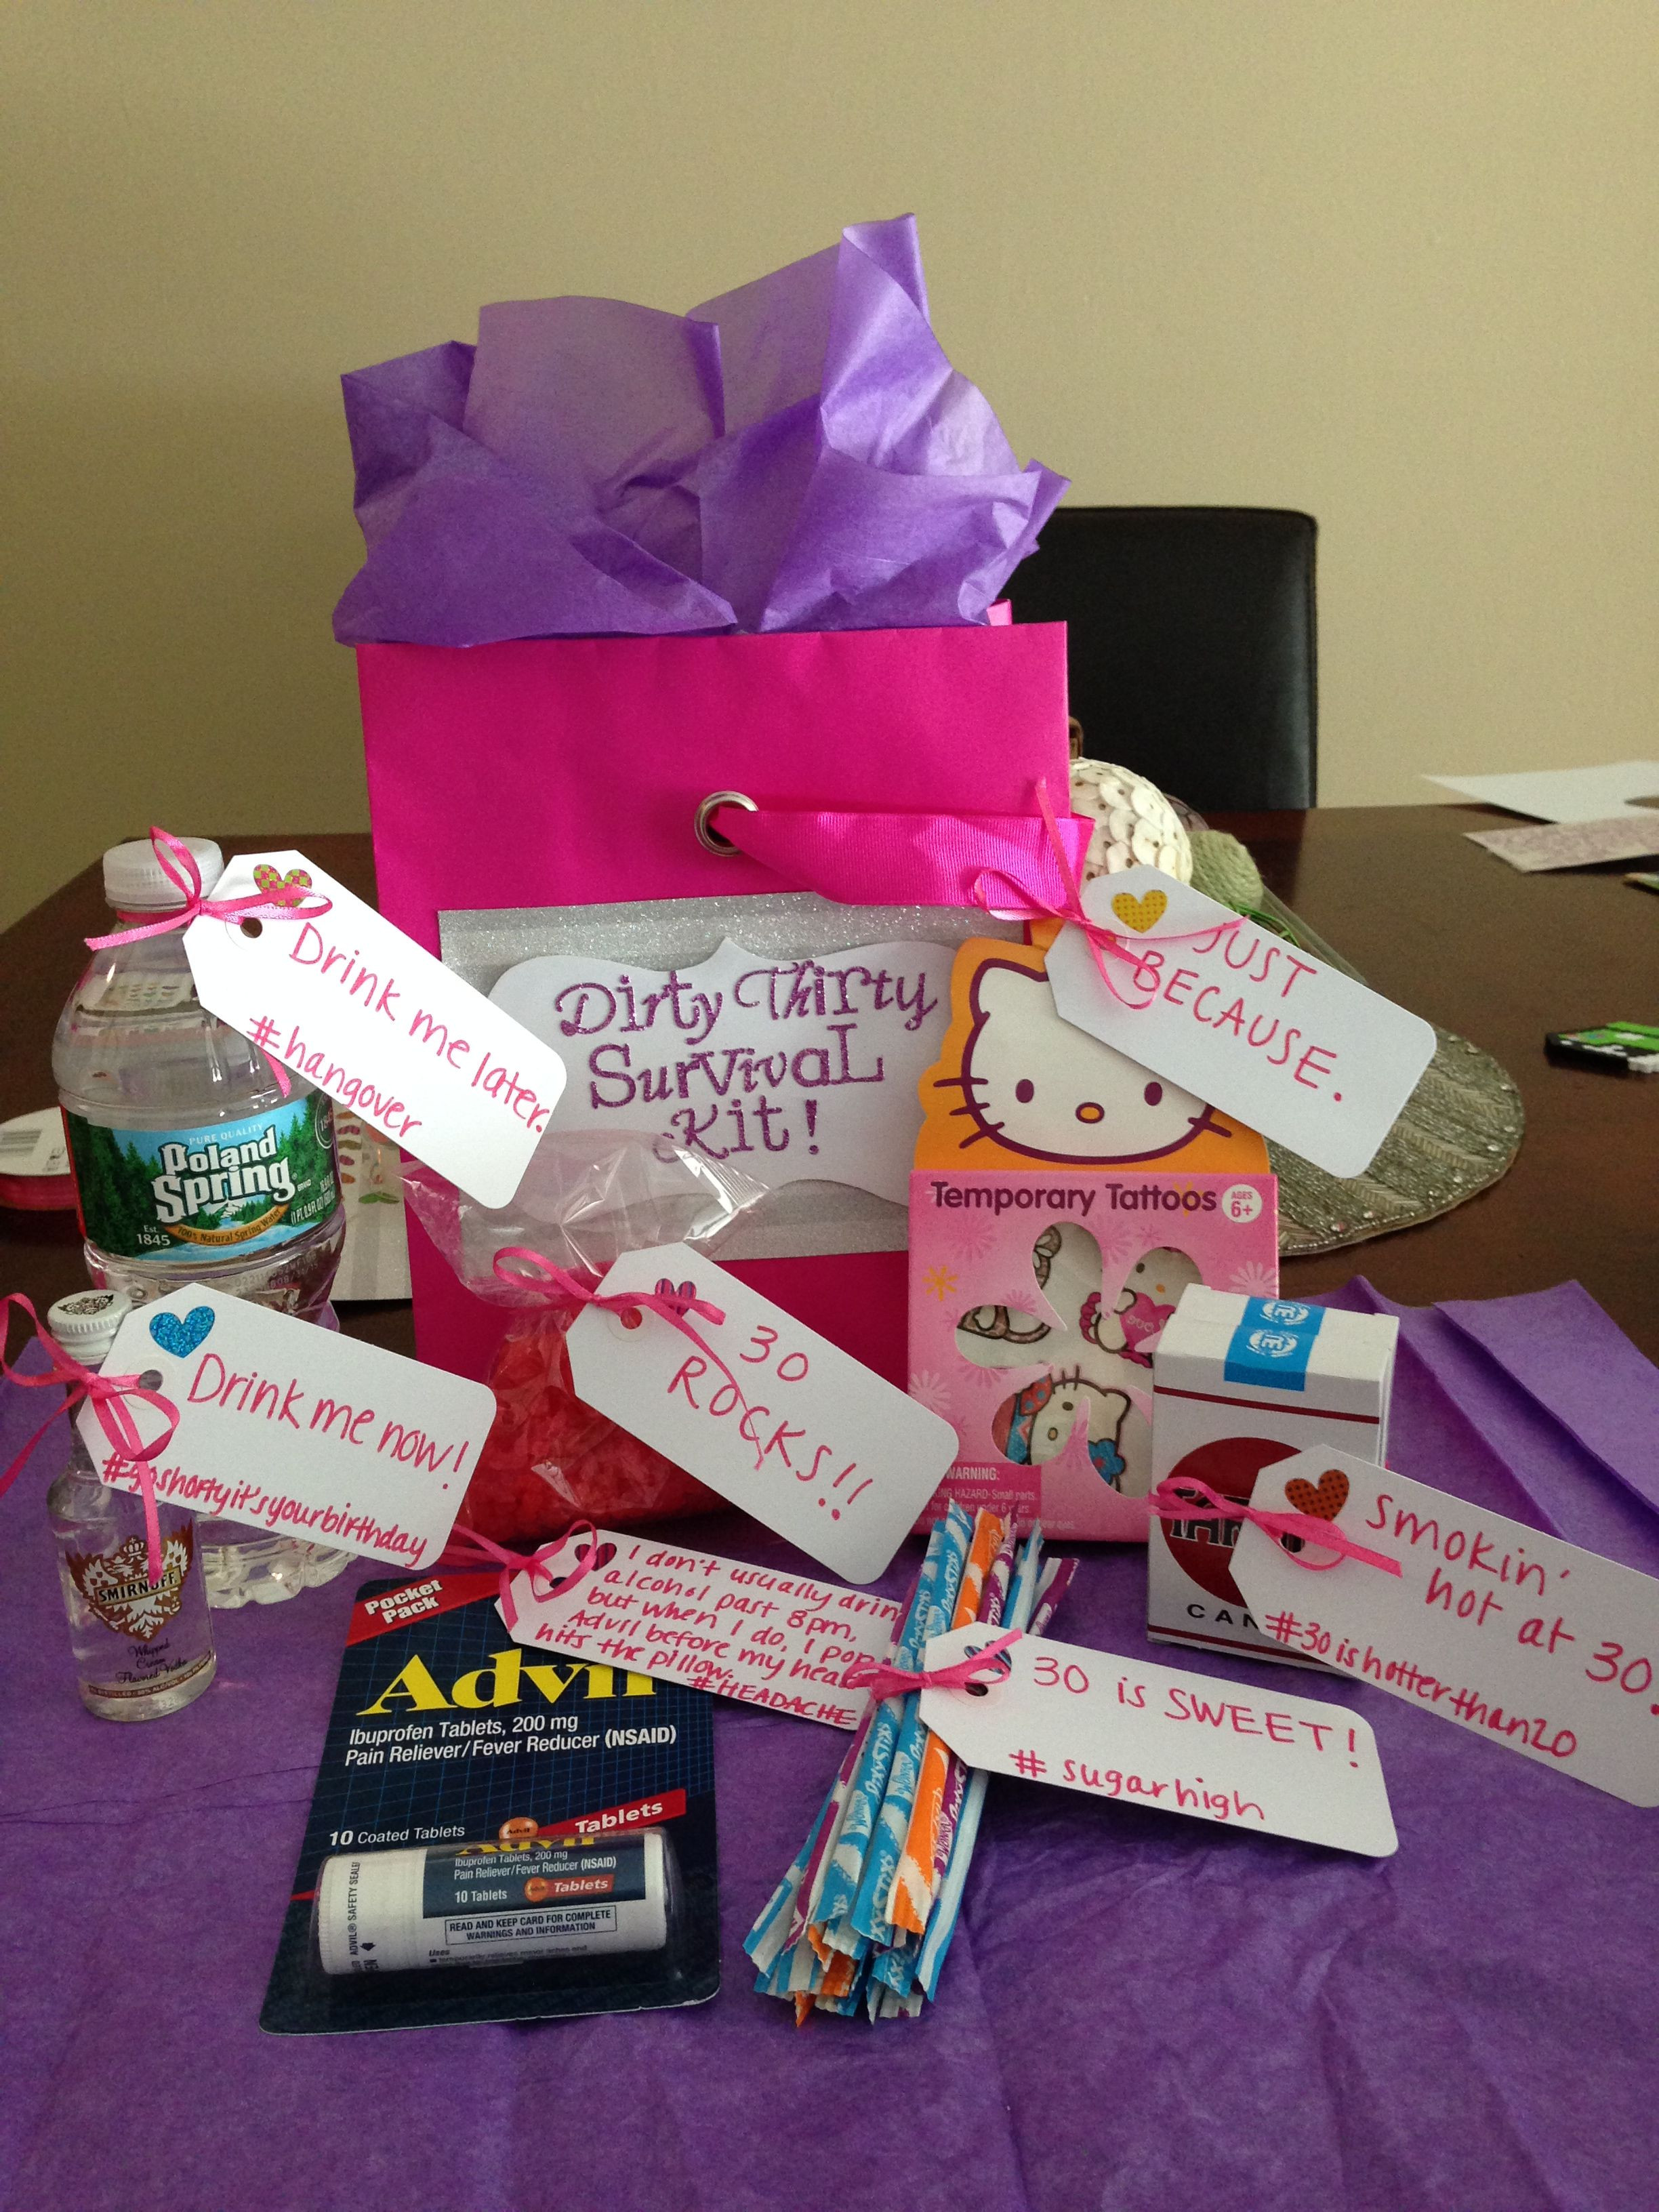 30 Gifts For 30Th Birthday For Her  30th Birthday t for her Dirty 30 Survival Kit